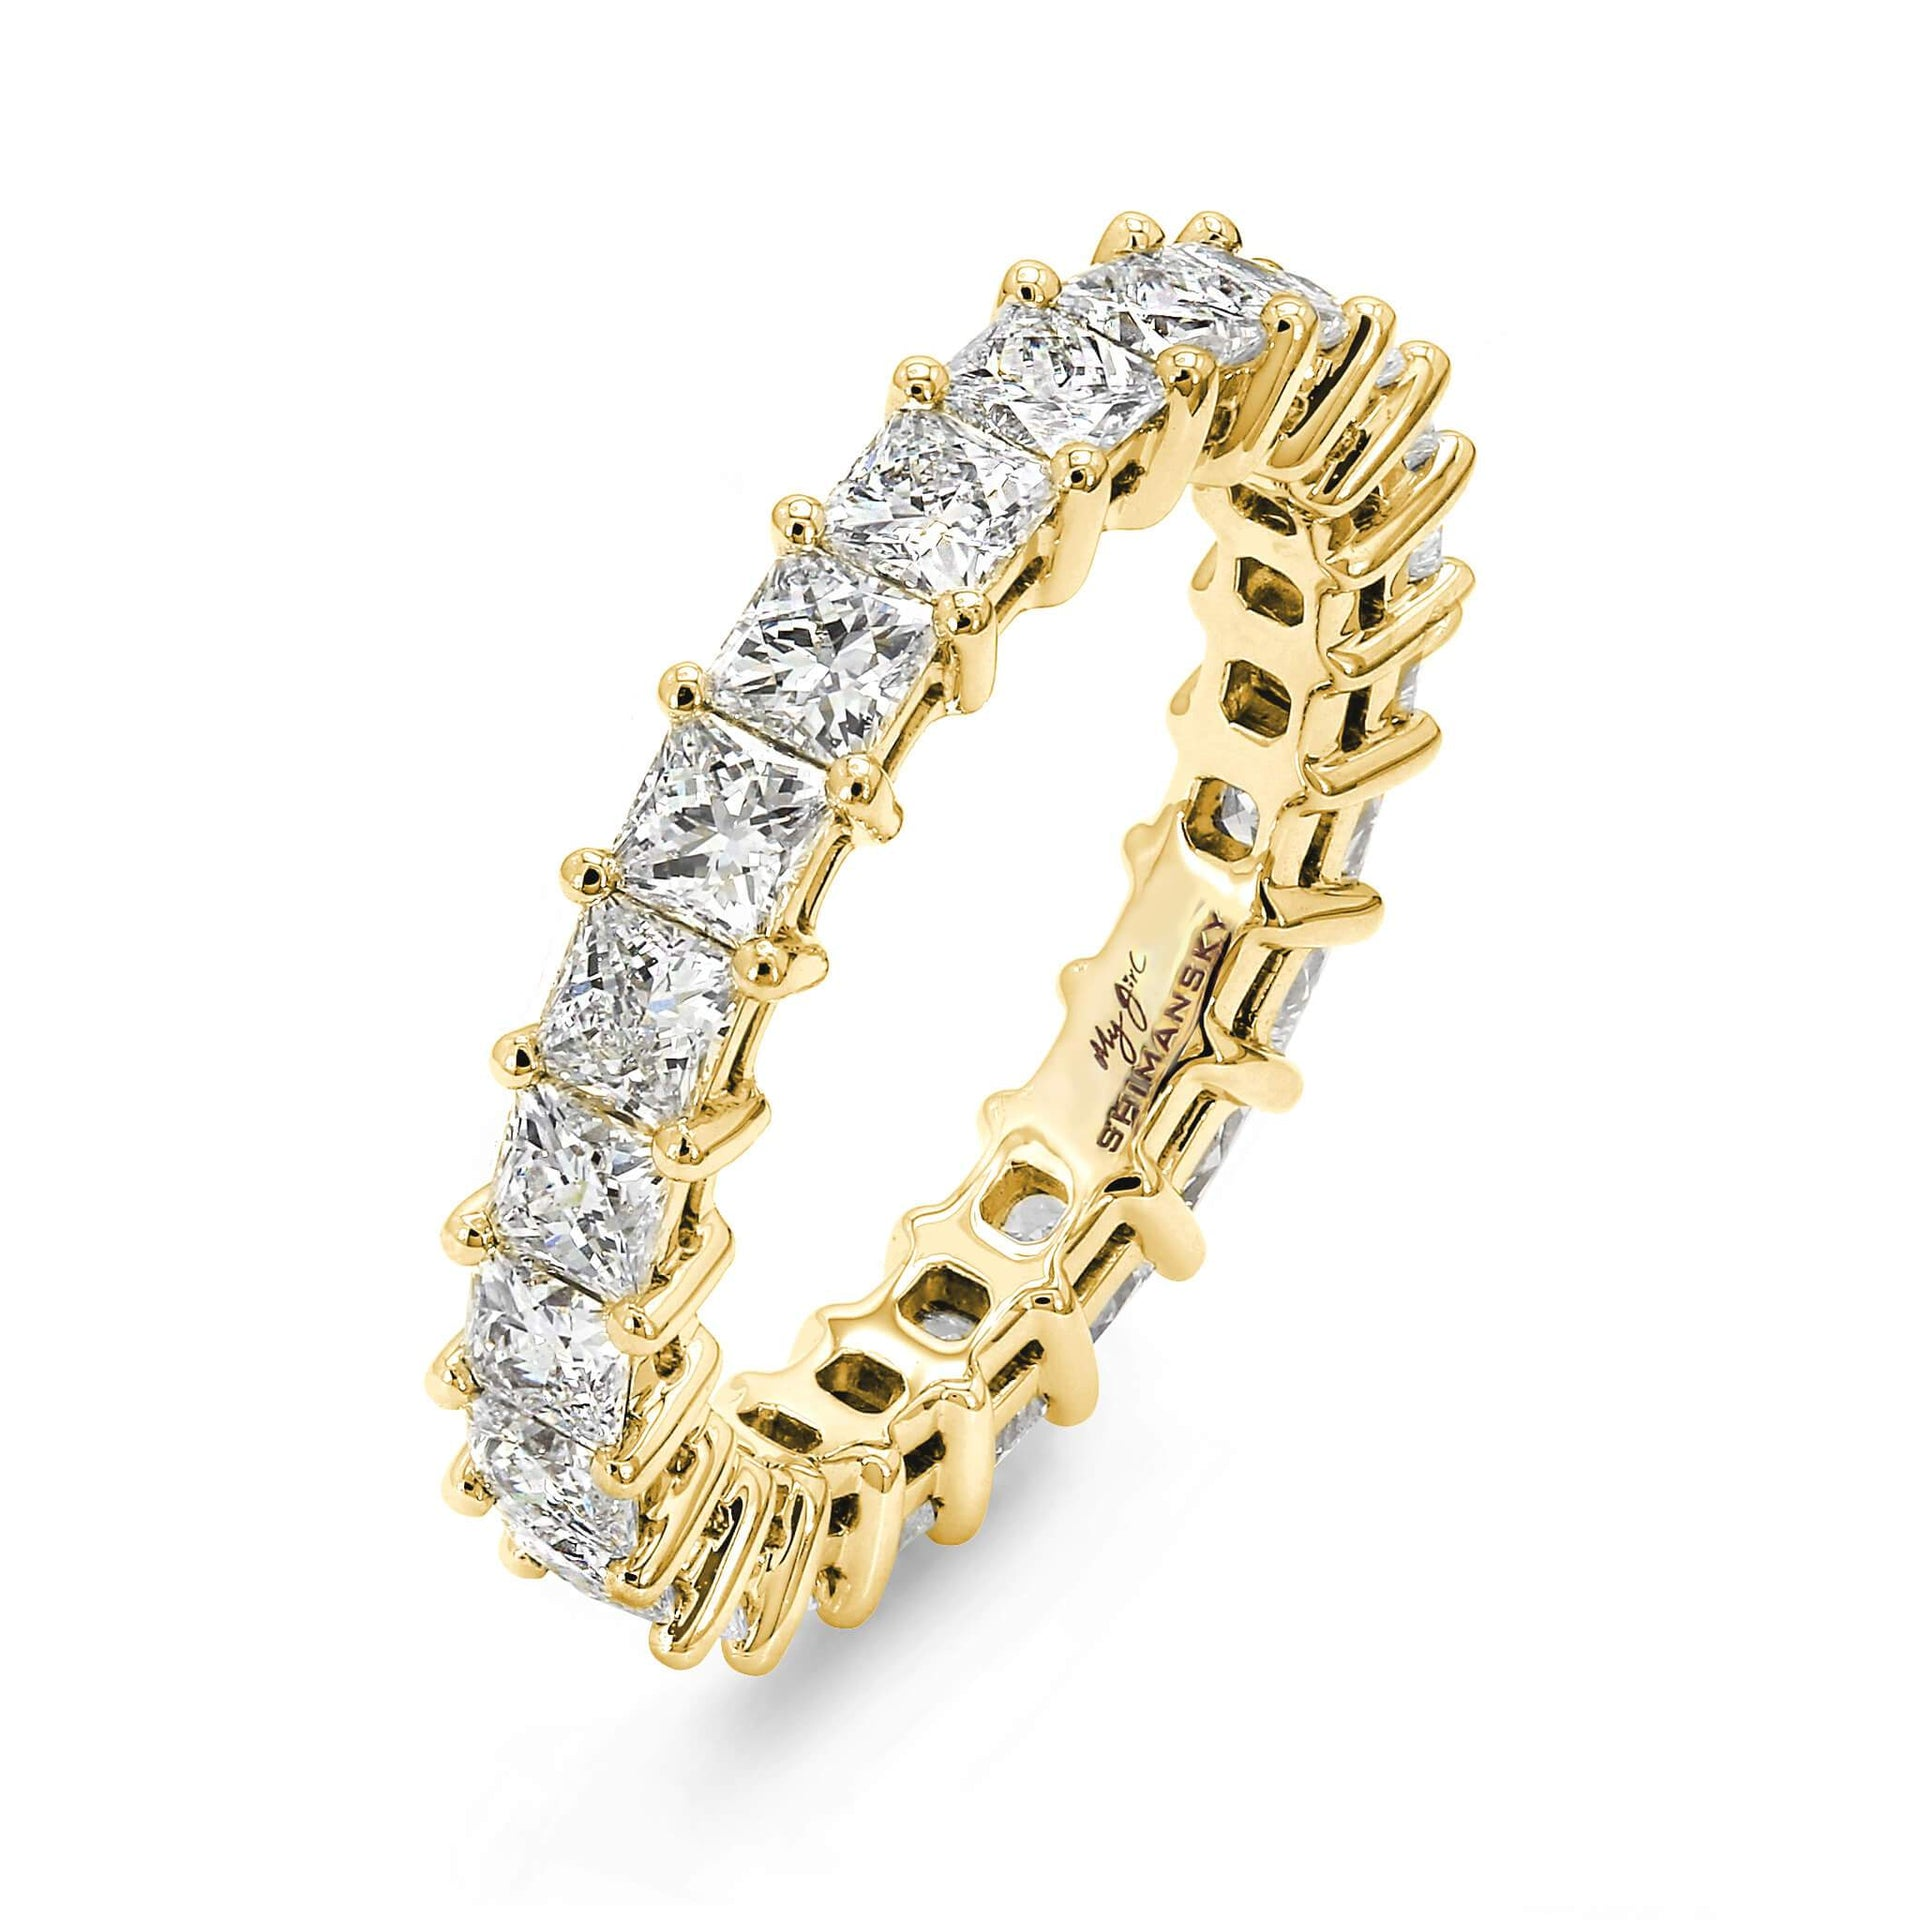 3.24 Carat My Girl Eternity Diamond Ring in 18K Yellow Gold 3D View